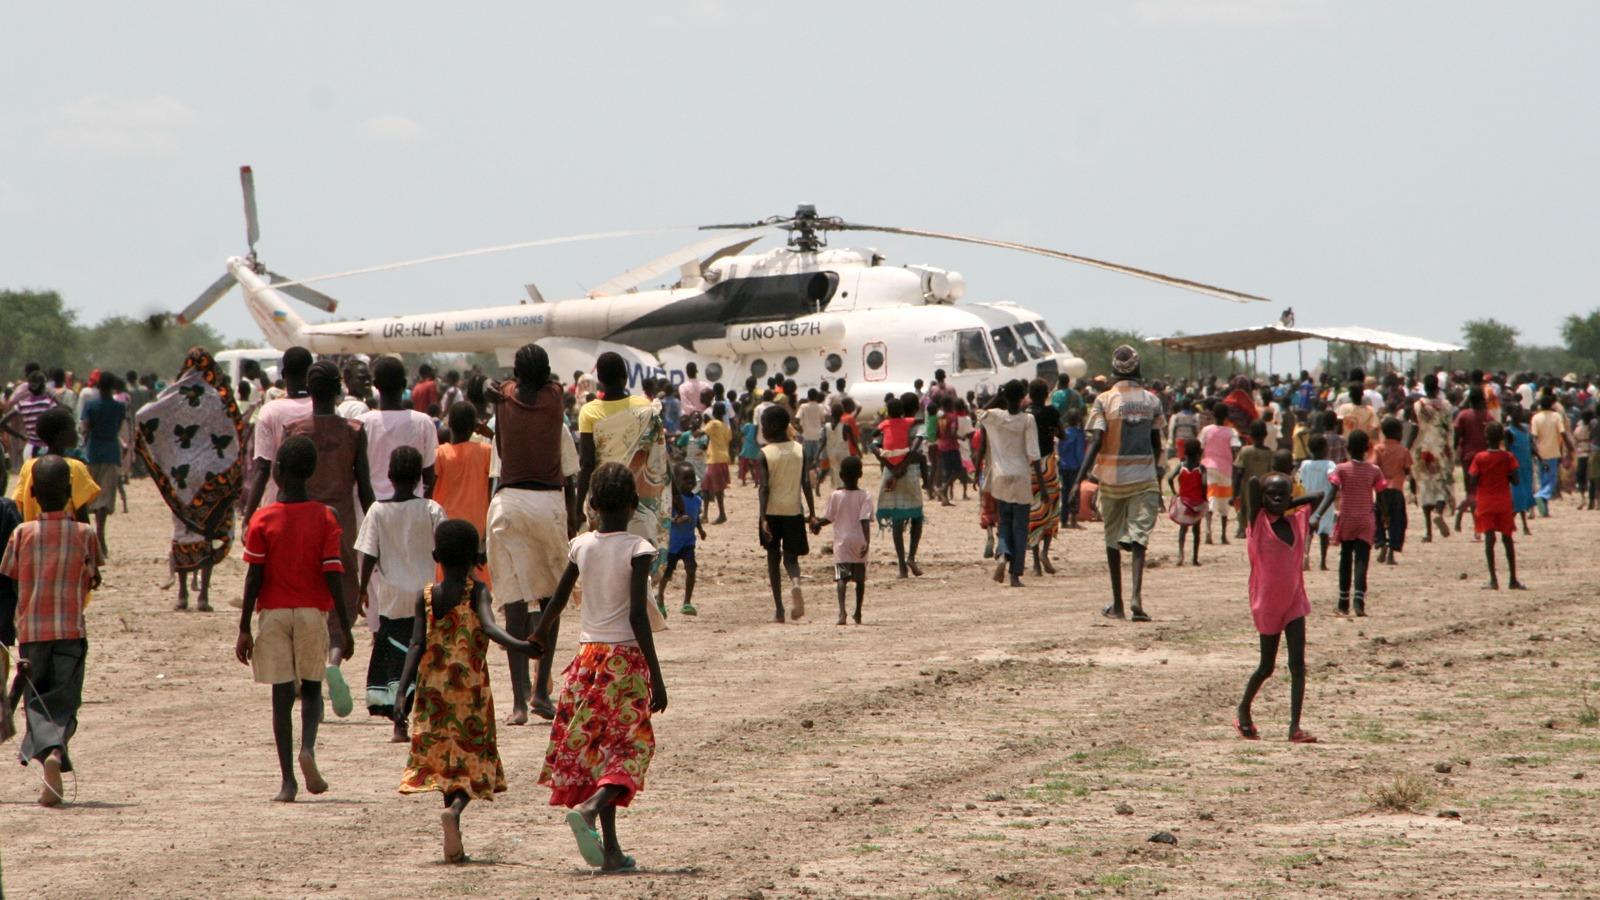 Displaced civilians crowd expectantly around a WFP helicopter in Wau Shilluk, Upper Nile State